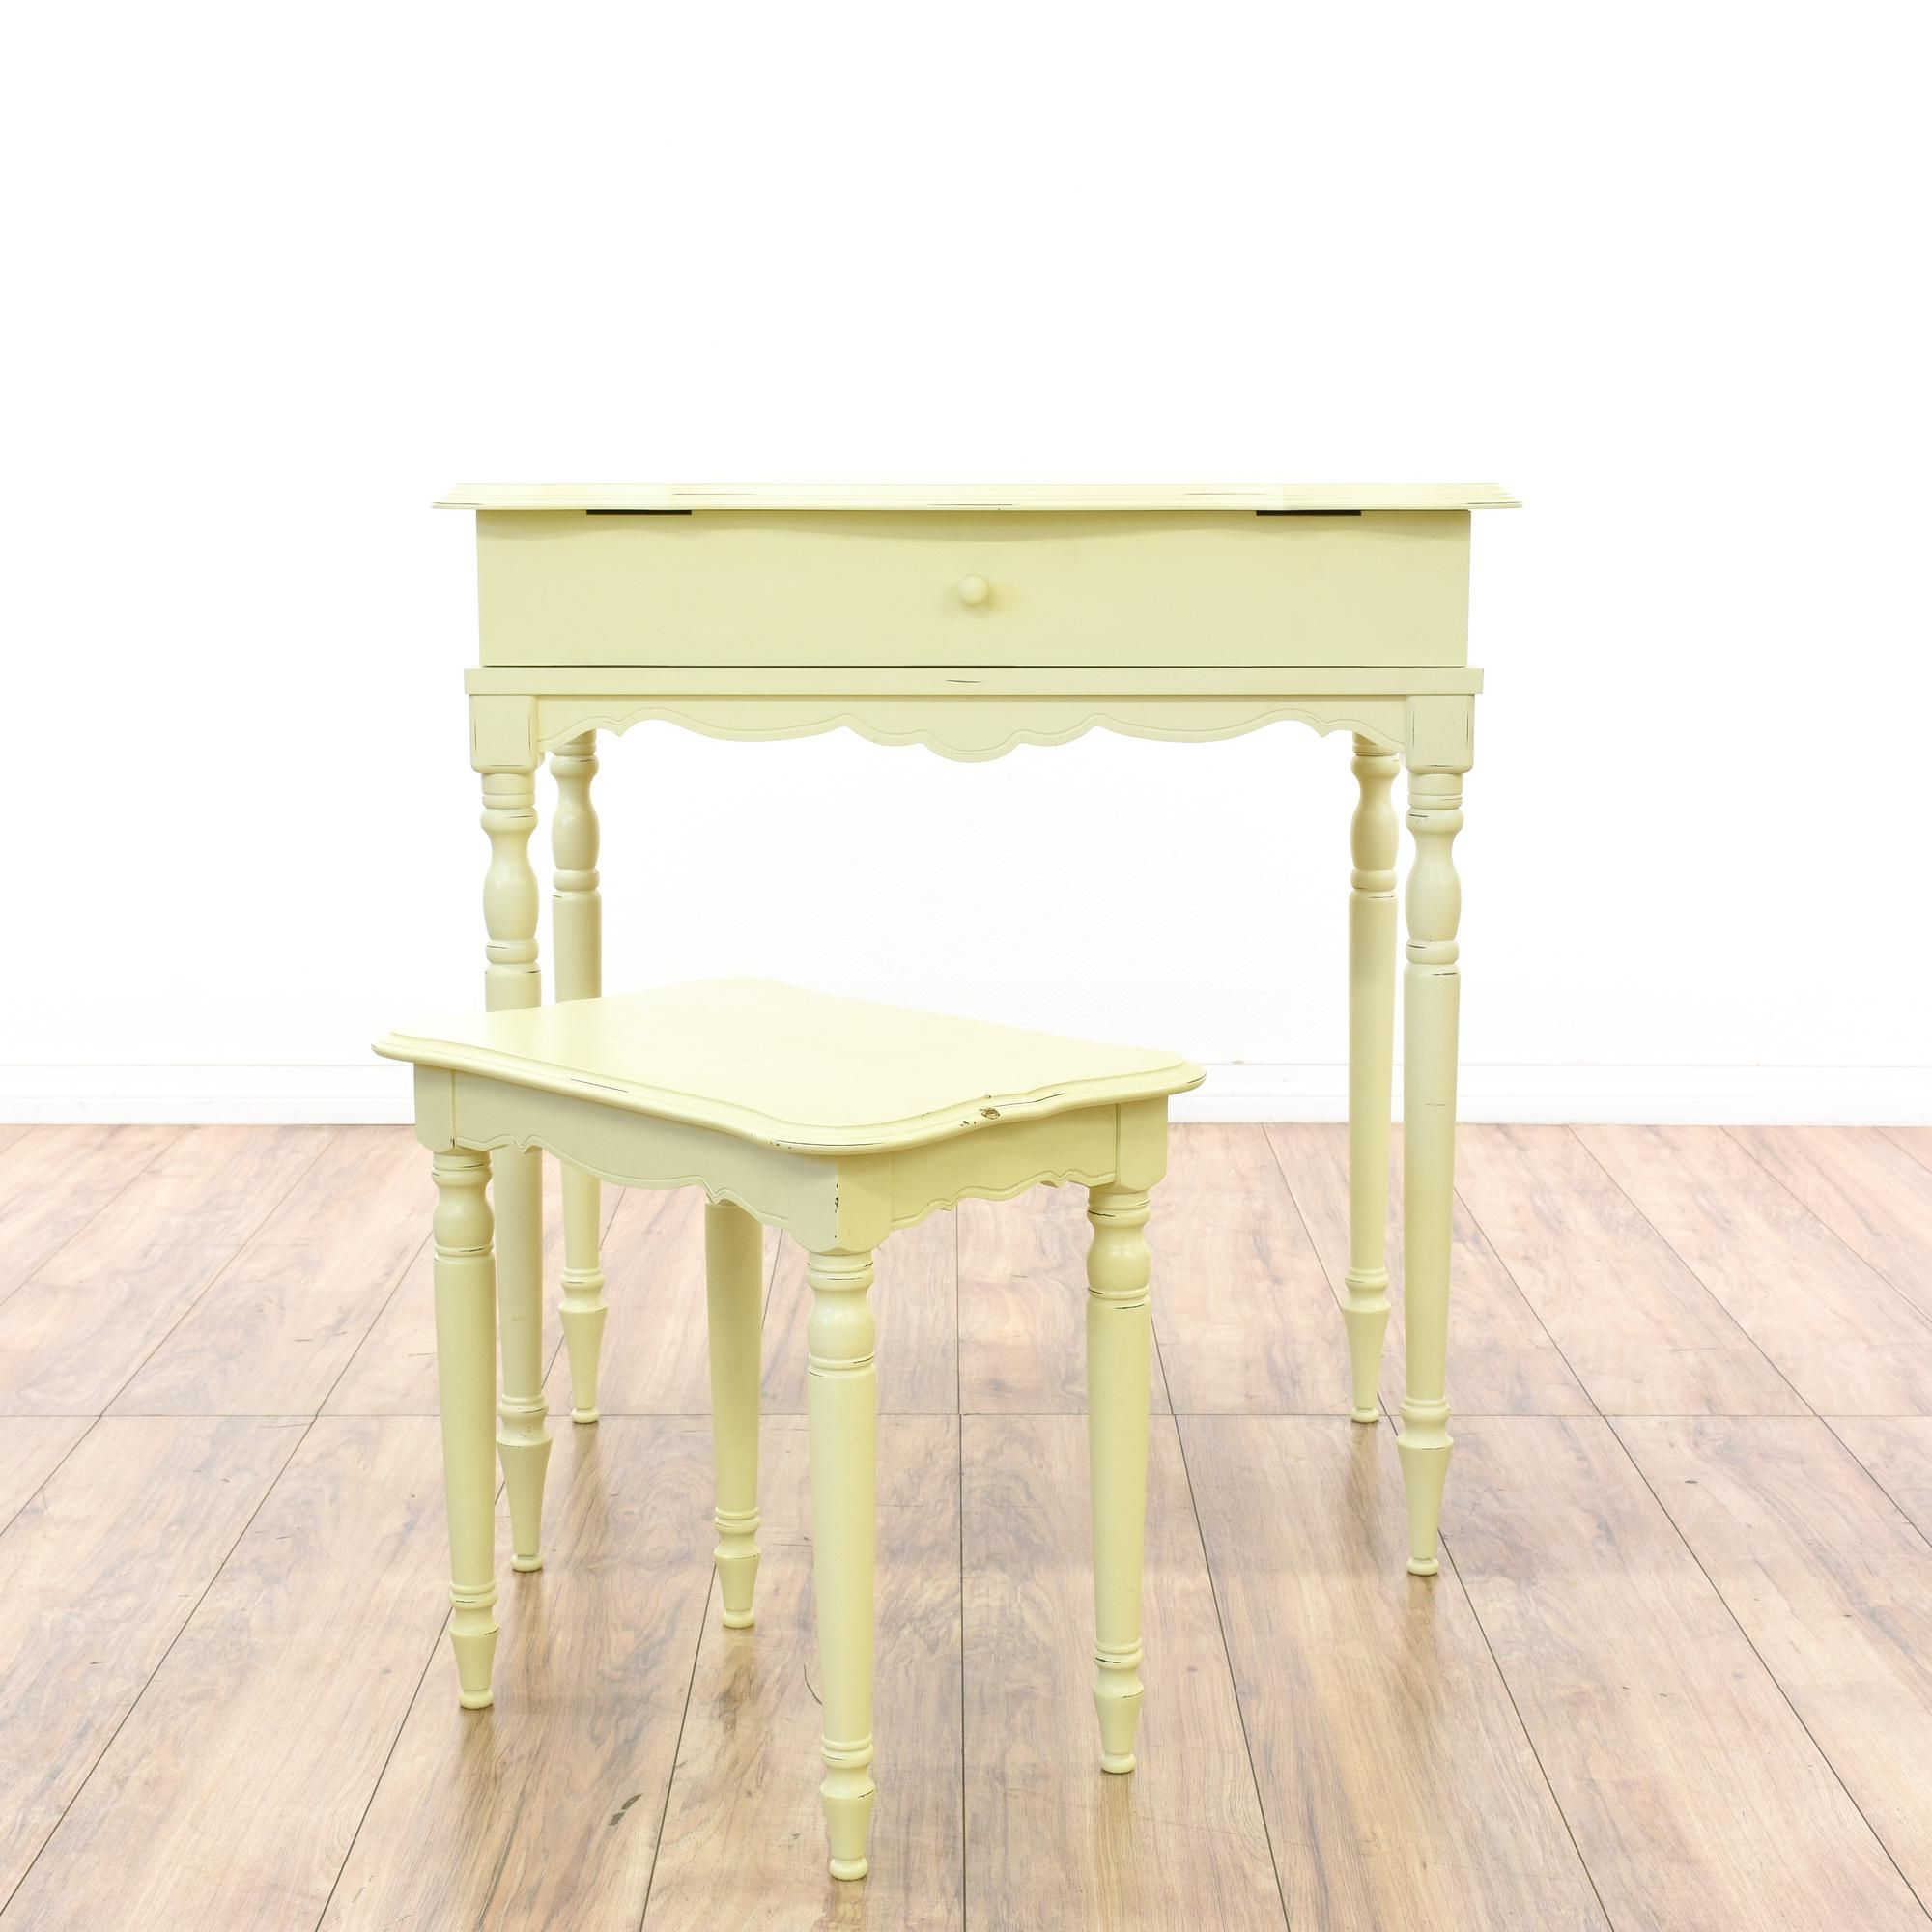 This writing desk and bench are featured in a solid wood with a